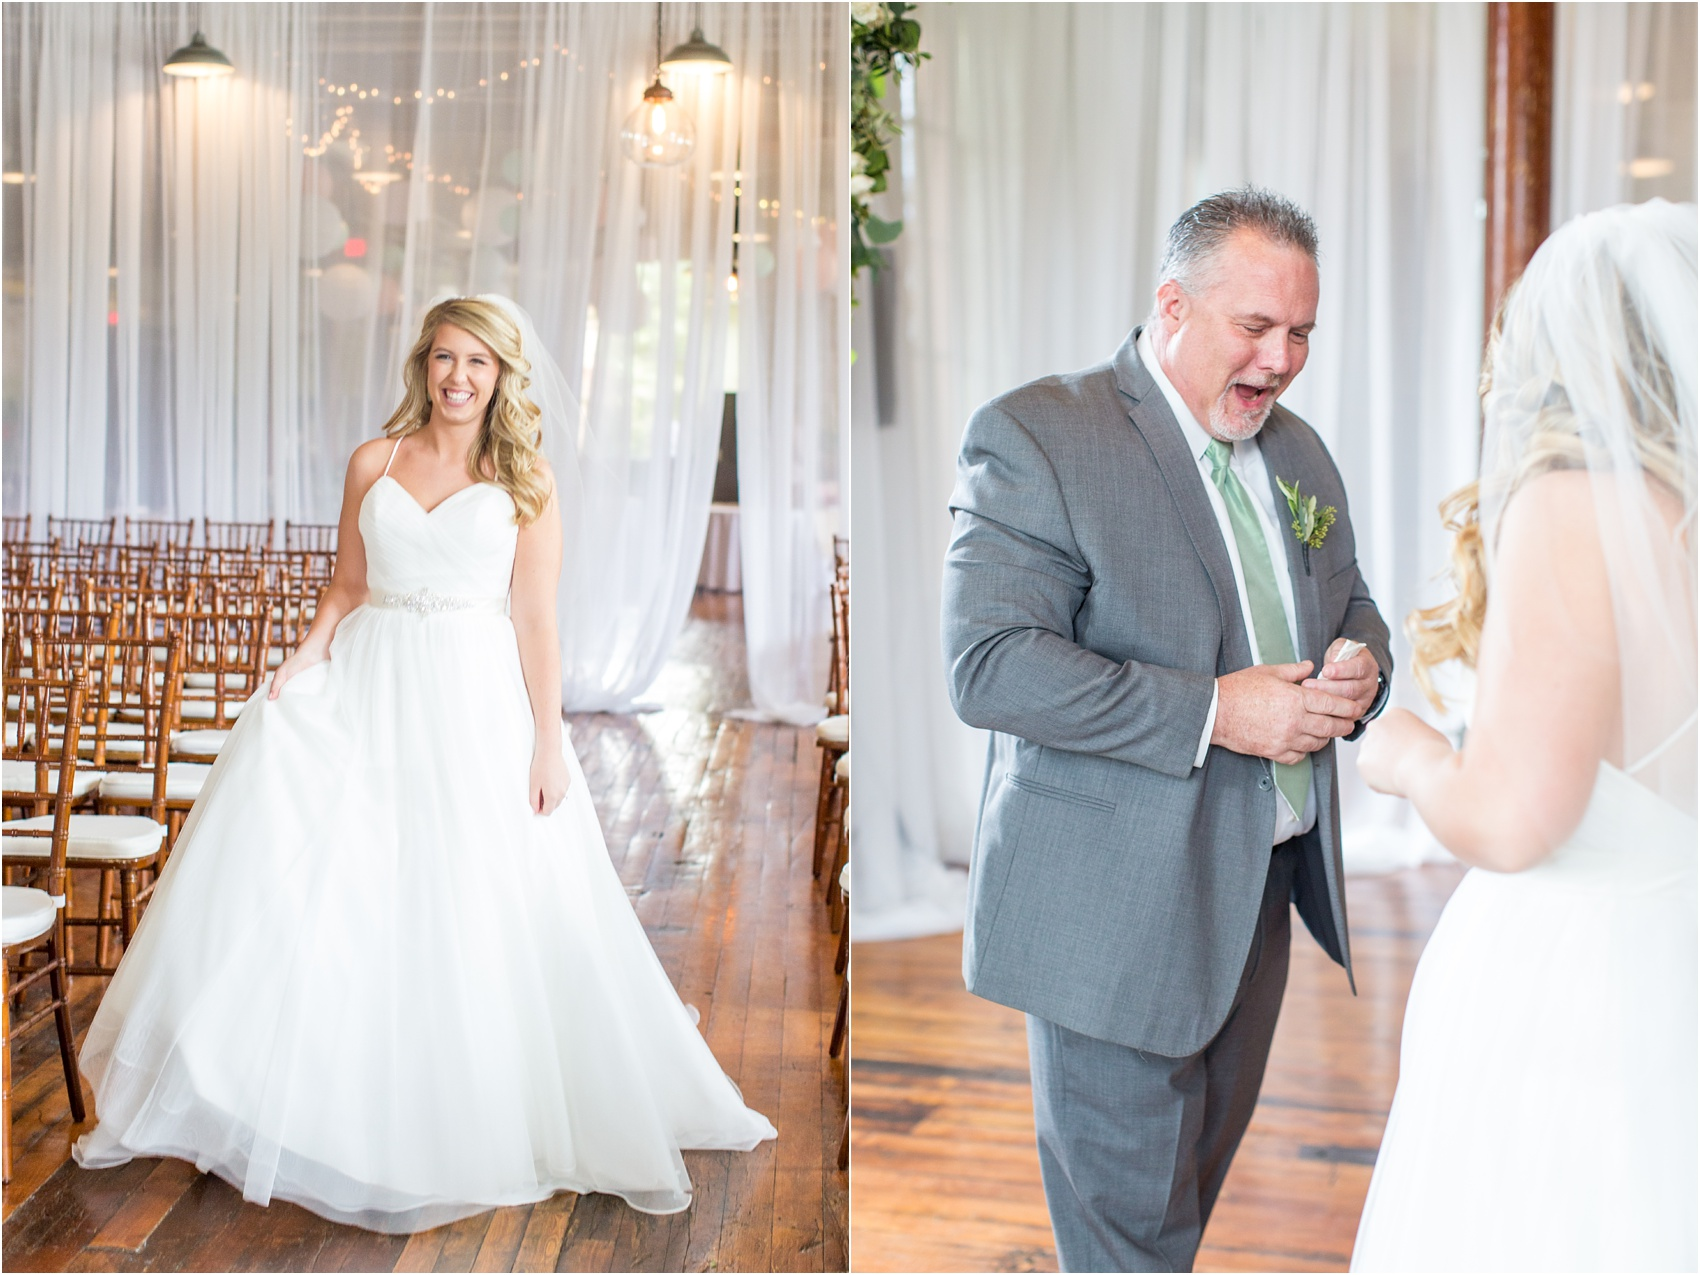 Savannah Eve Photography- Gunter Wedding- Blog-14.jpg